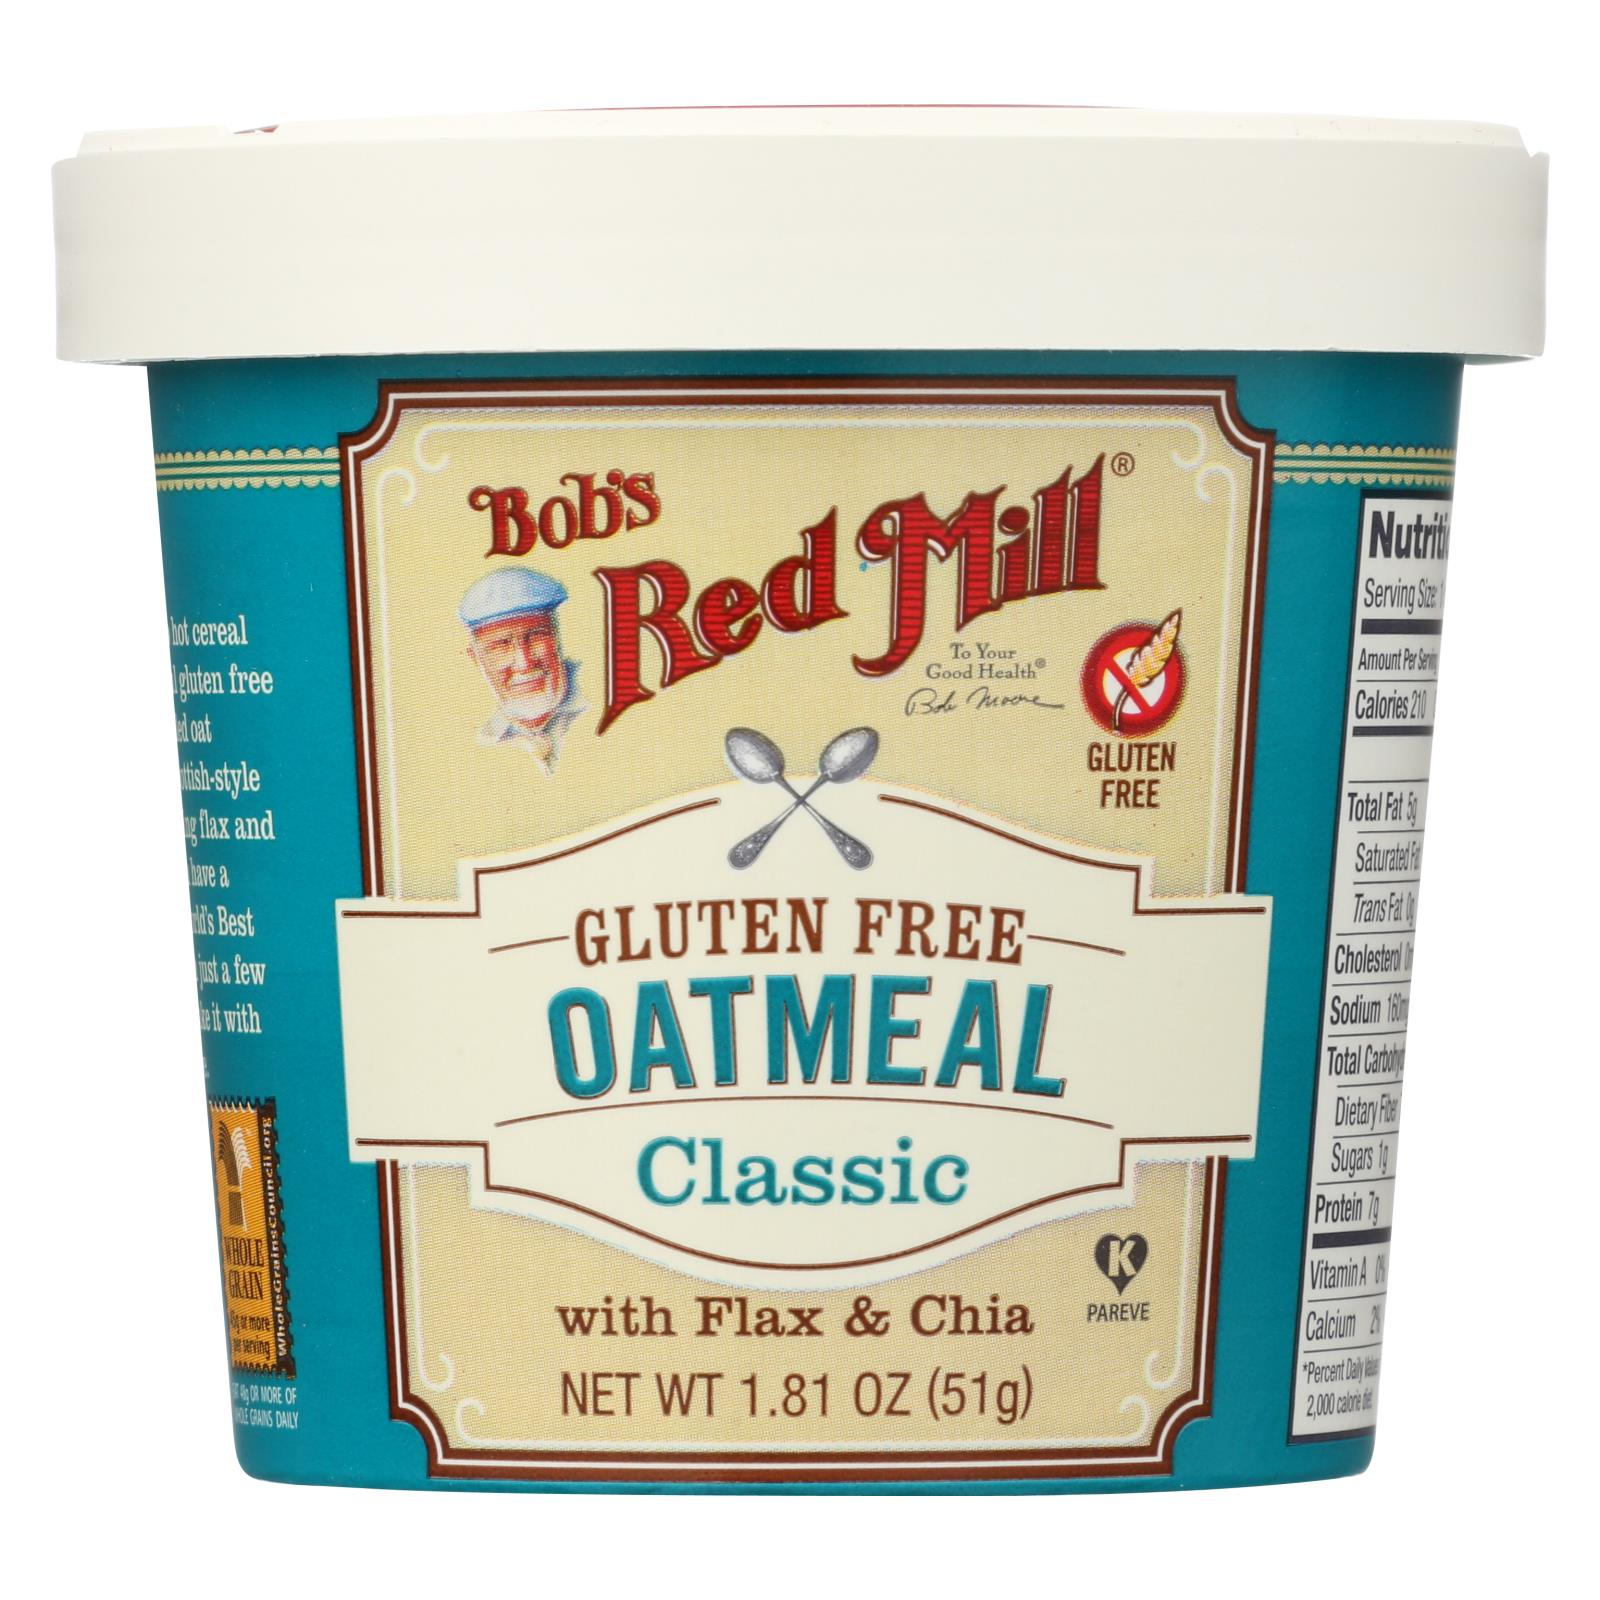 Bob's Red Mill Gluten Free Oatmeal Cup, Classic With Flax-chia - 1.81 Oz - Case Of 12 HG1770619